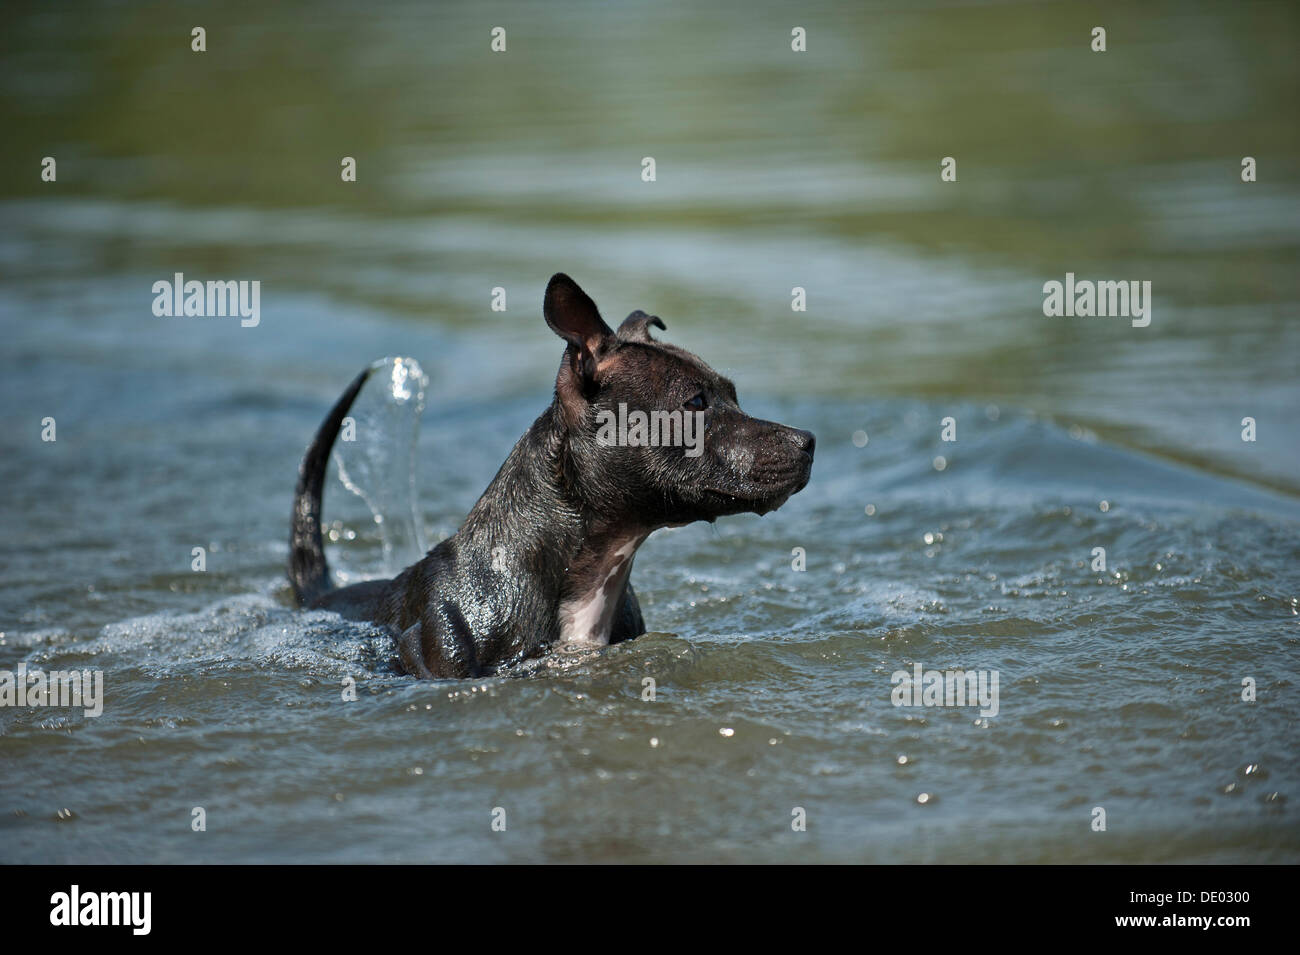 Old English Staffordshire Bull Terrier, dog in the water - Stock Image